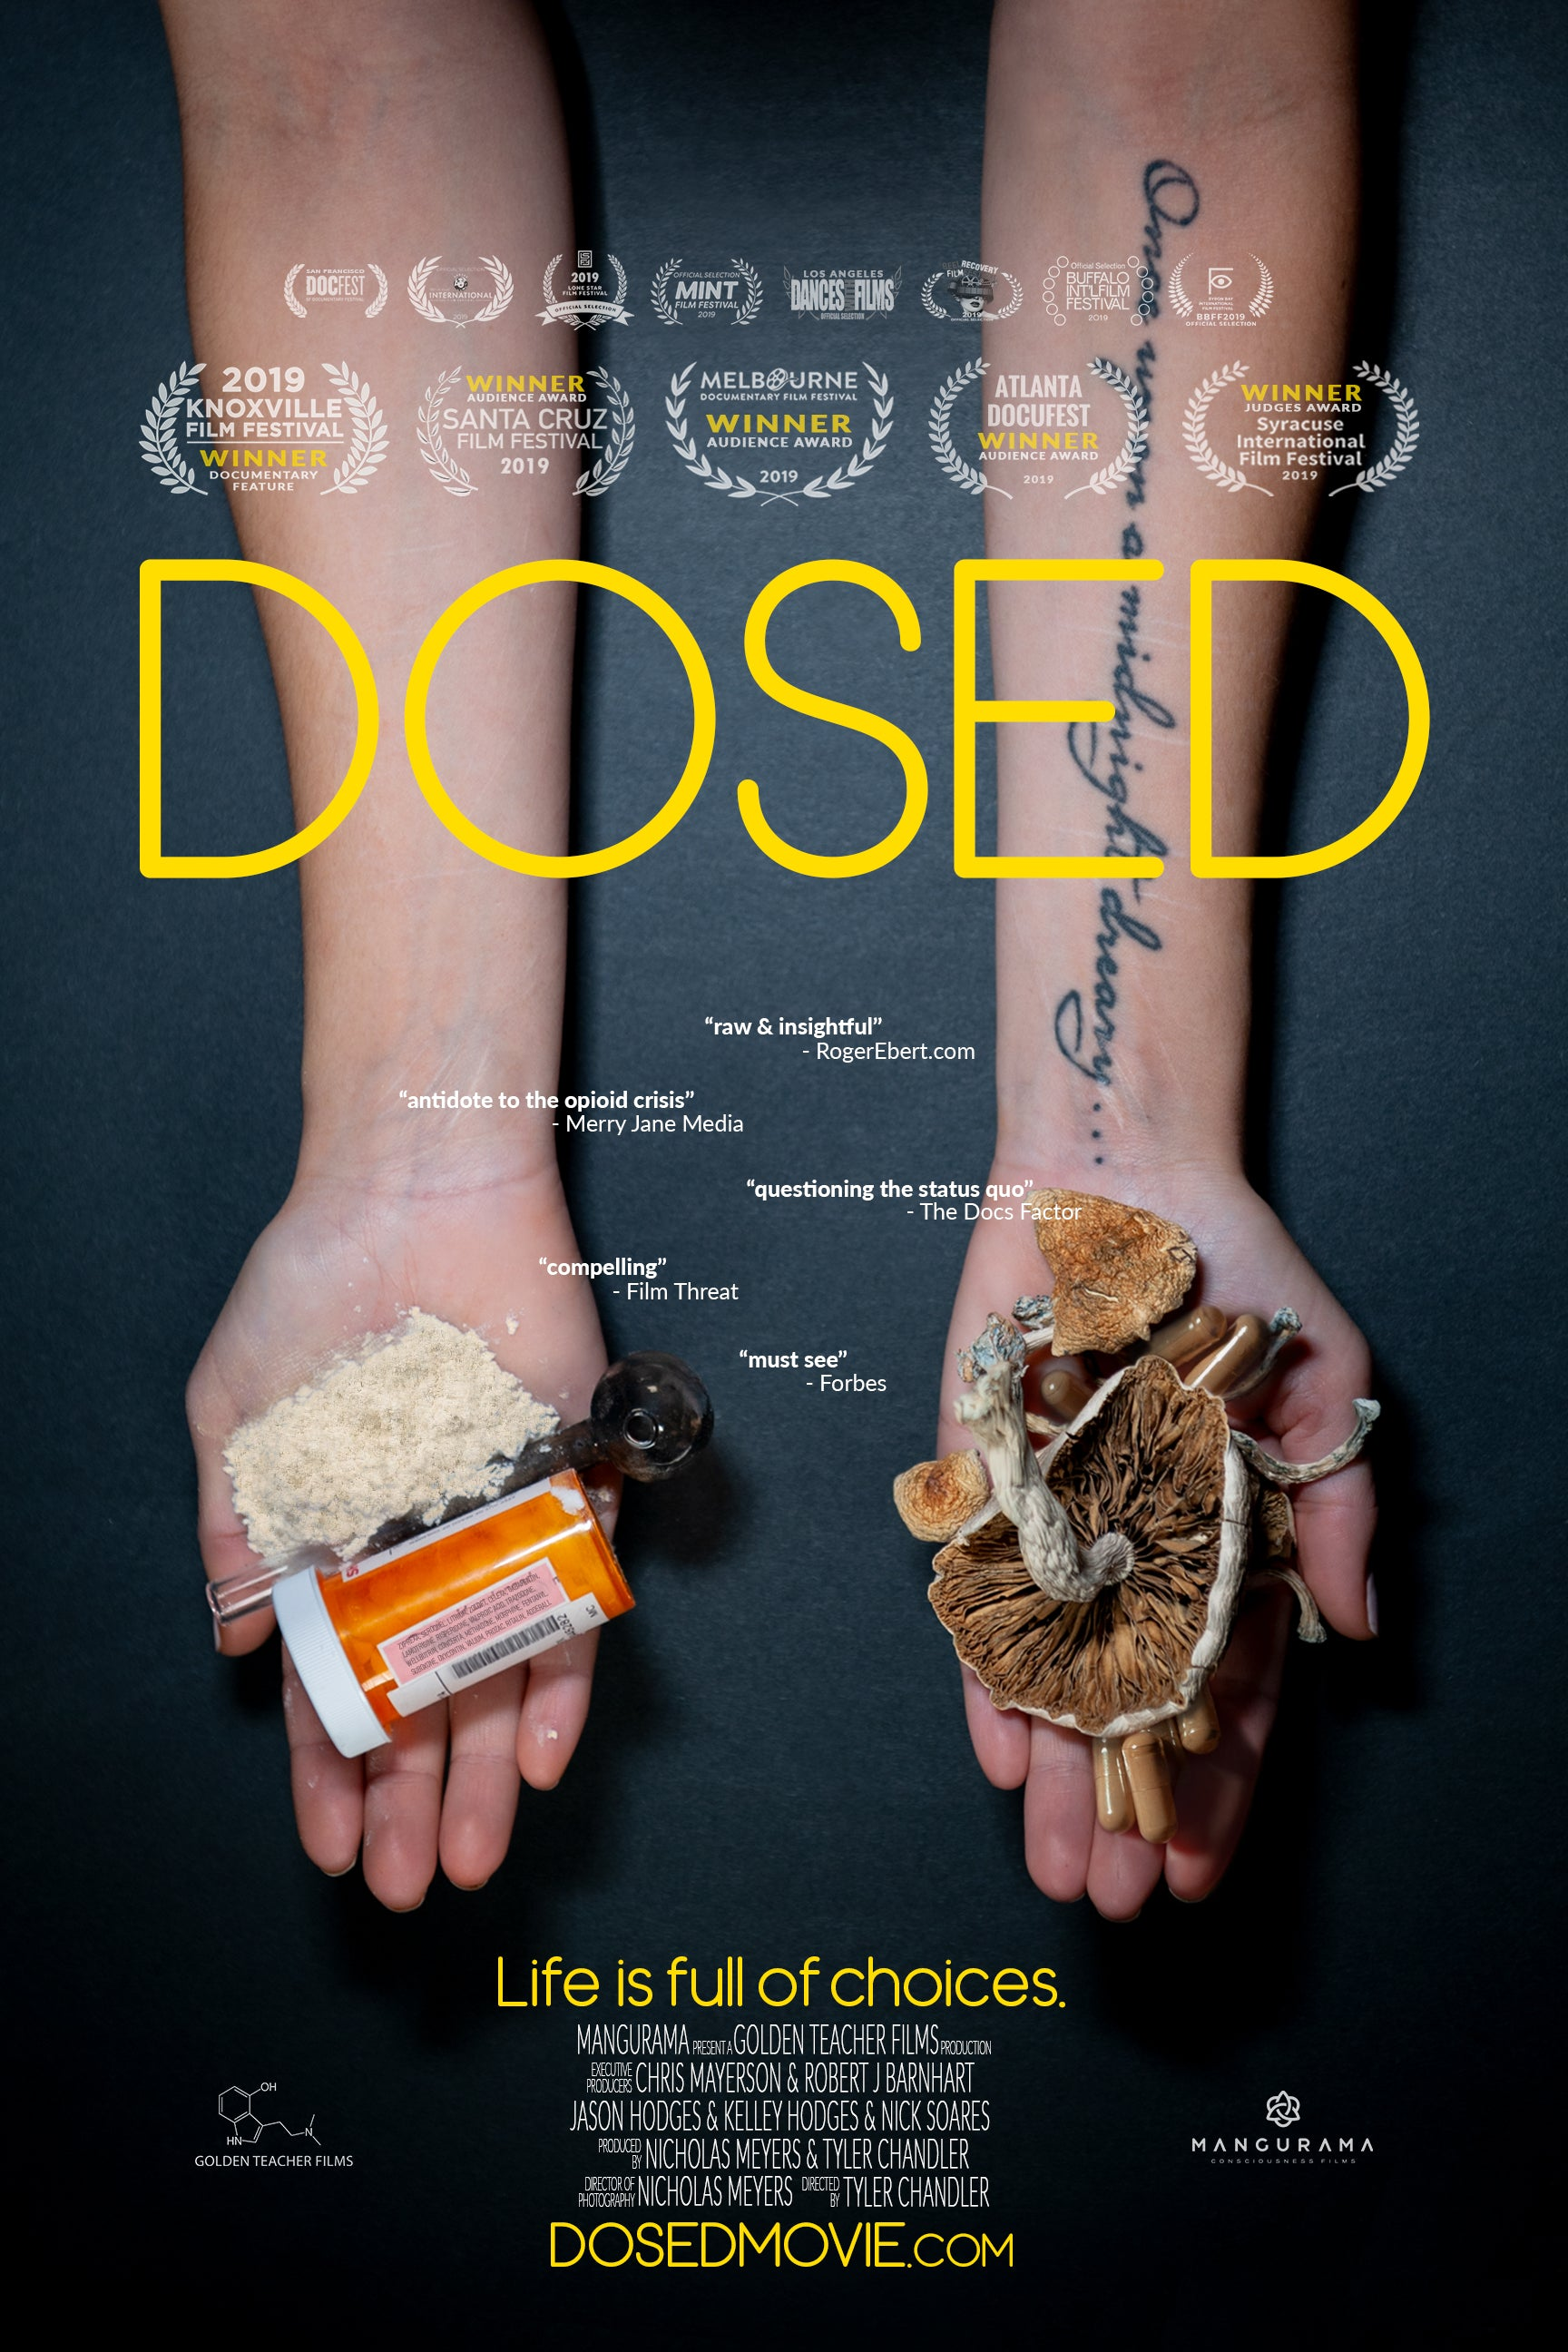 Dosed